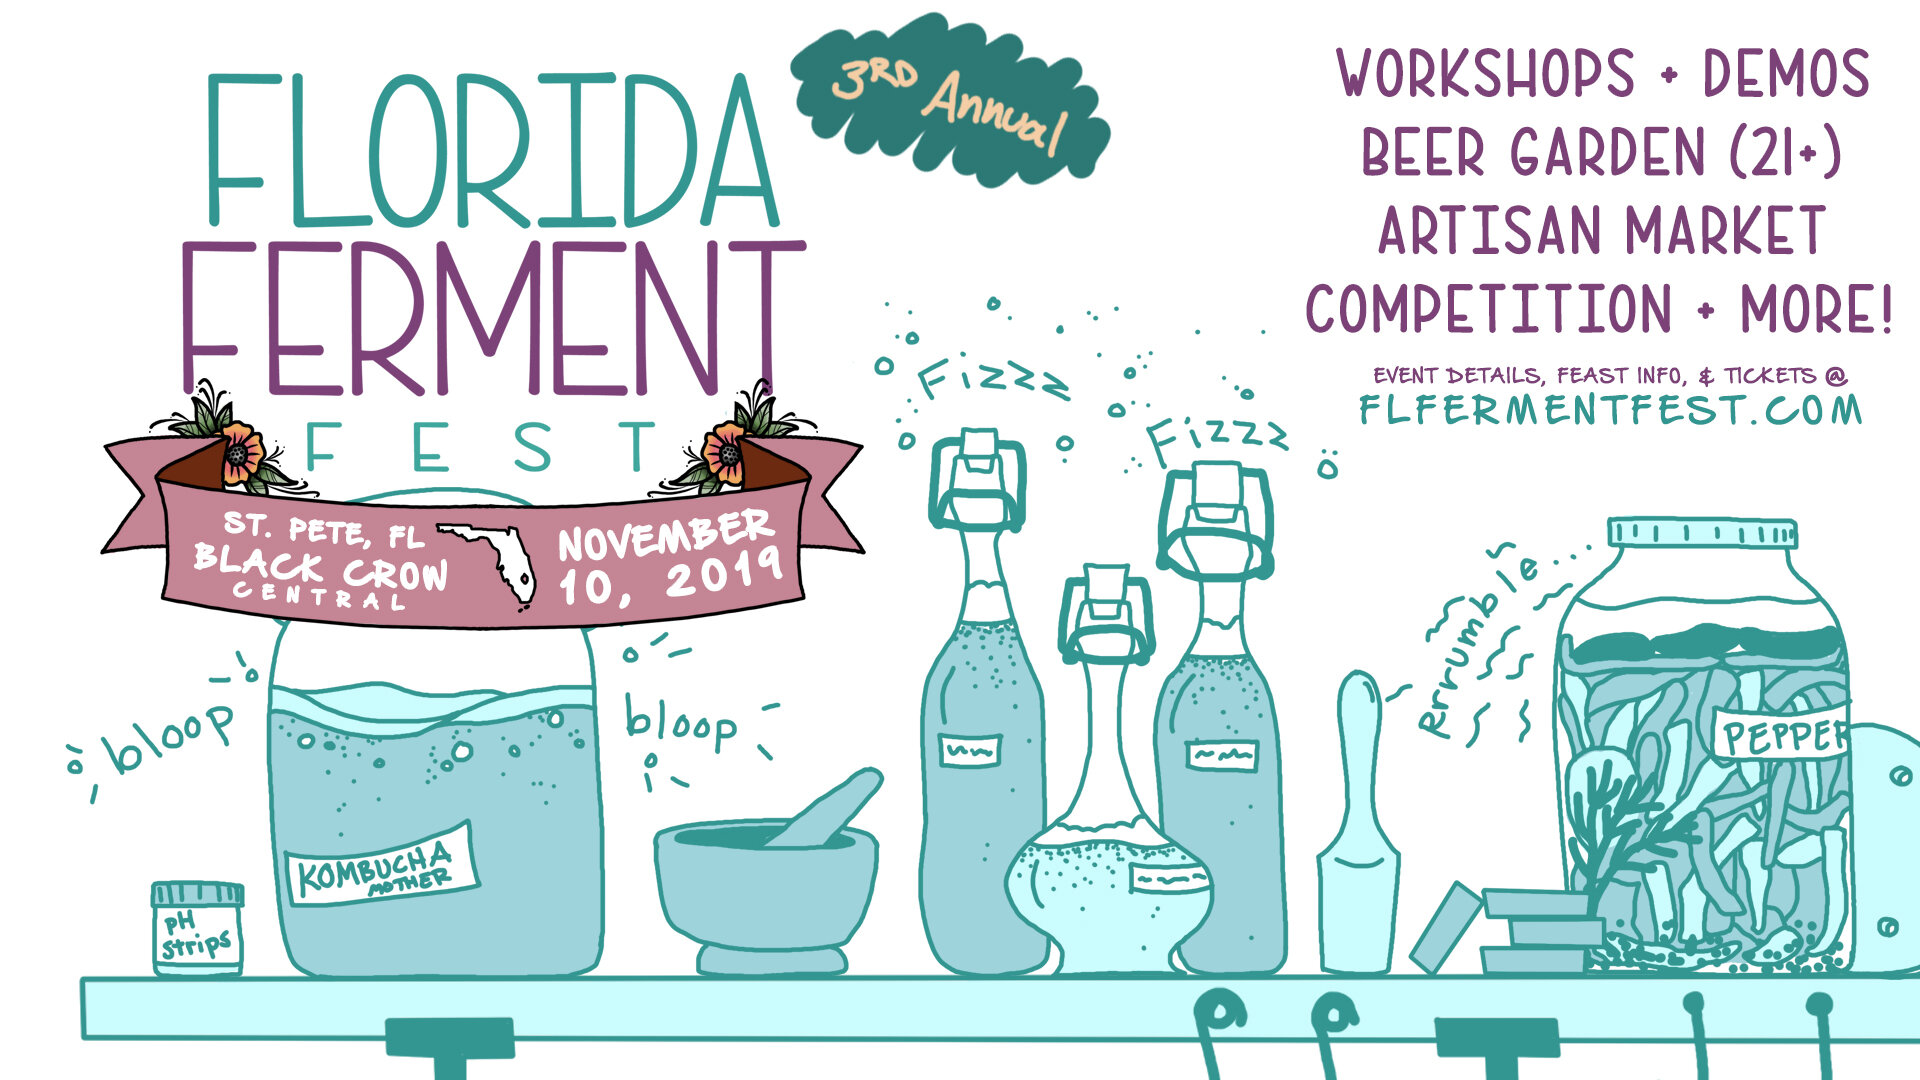 FL Ferment Fest_2019_FB Event Page Photo_2 (1).jpg